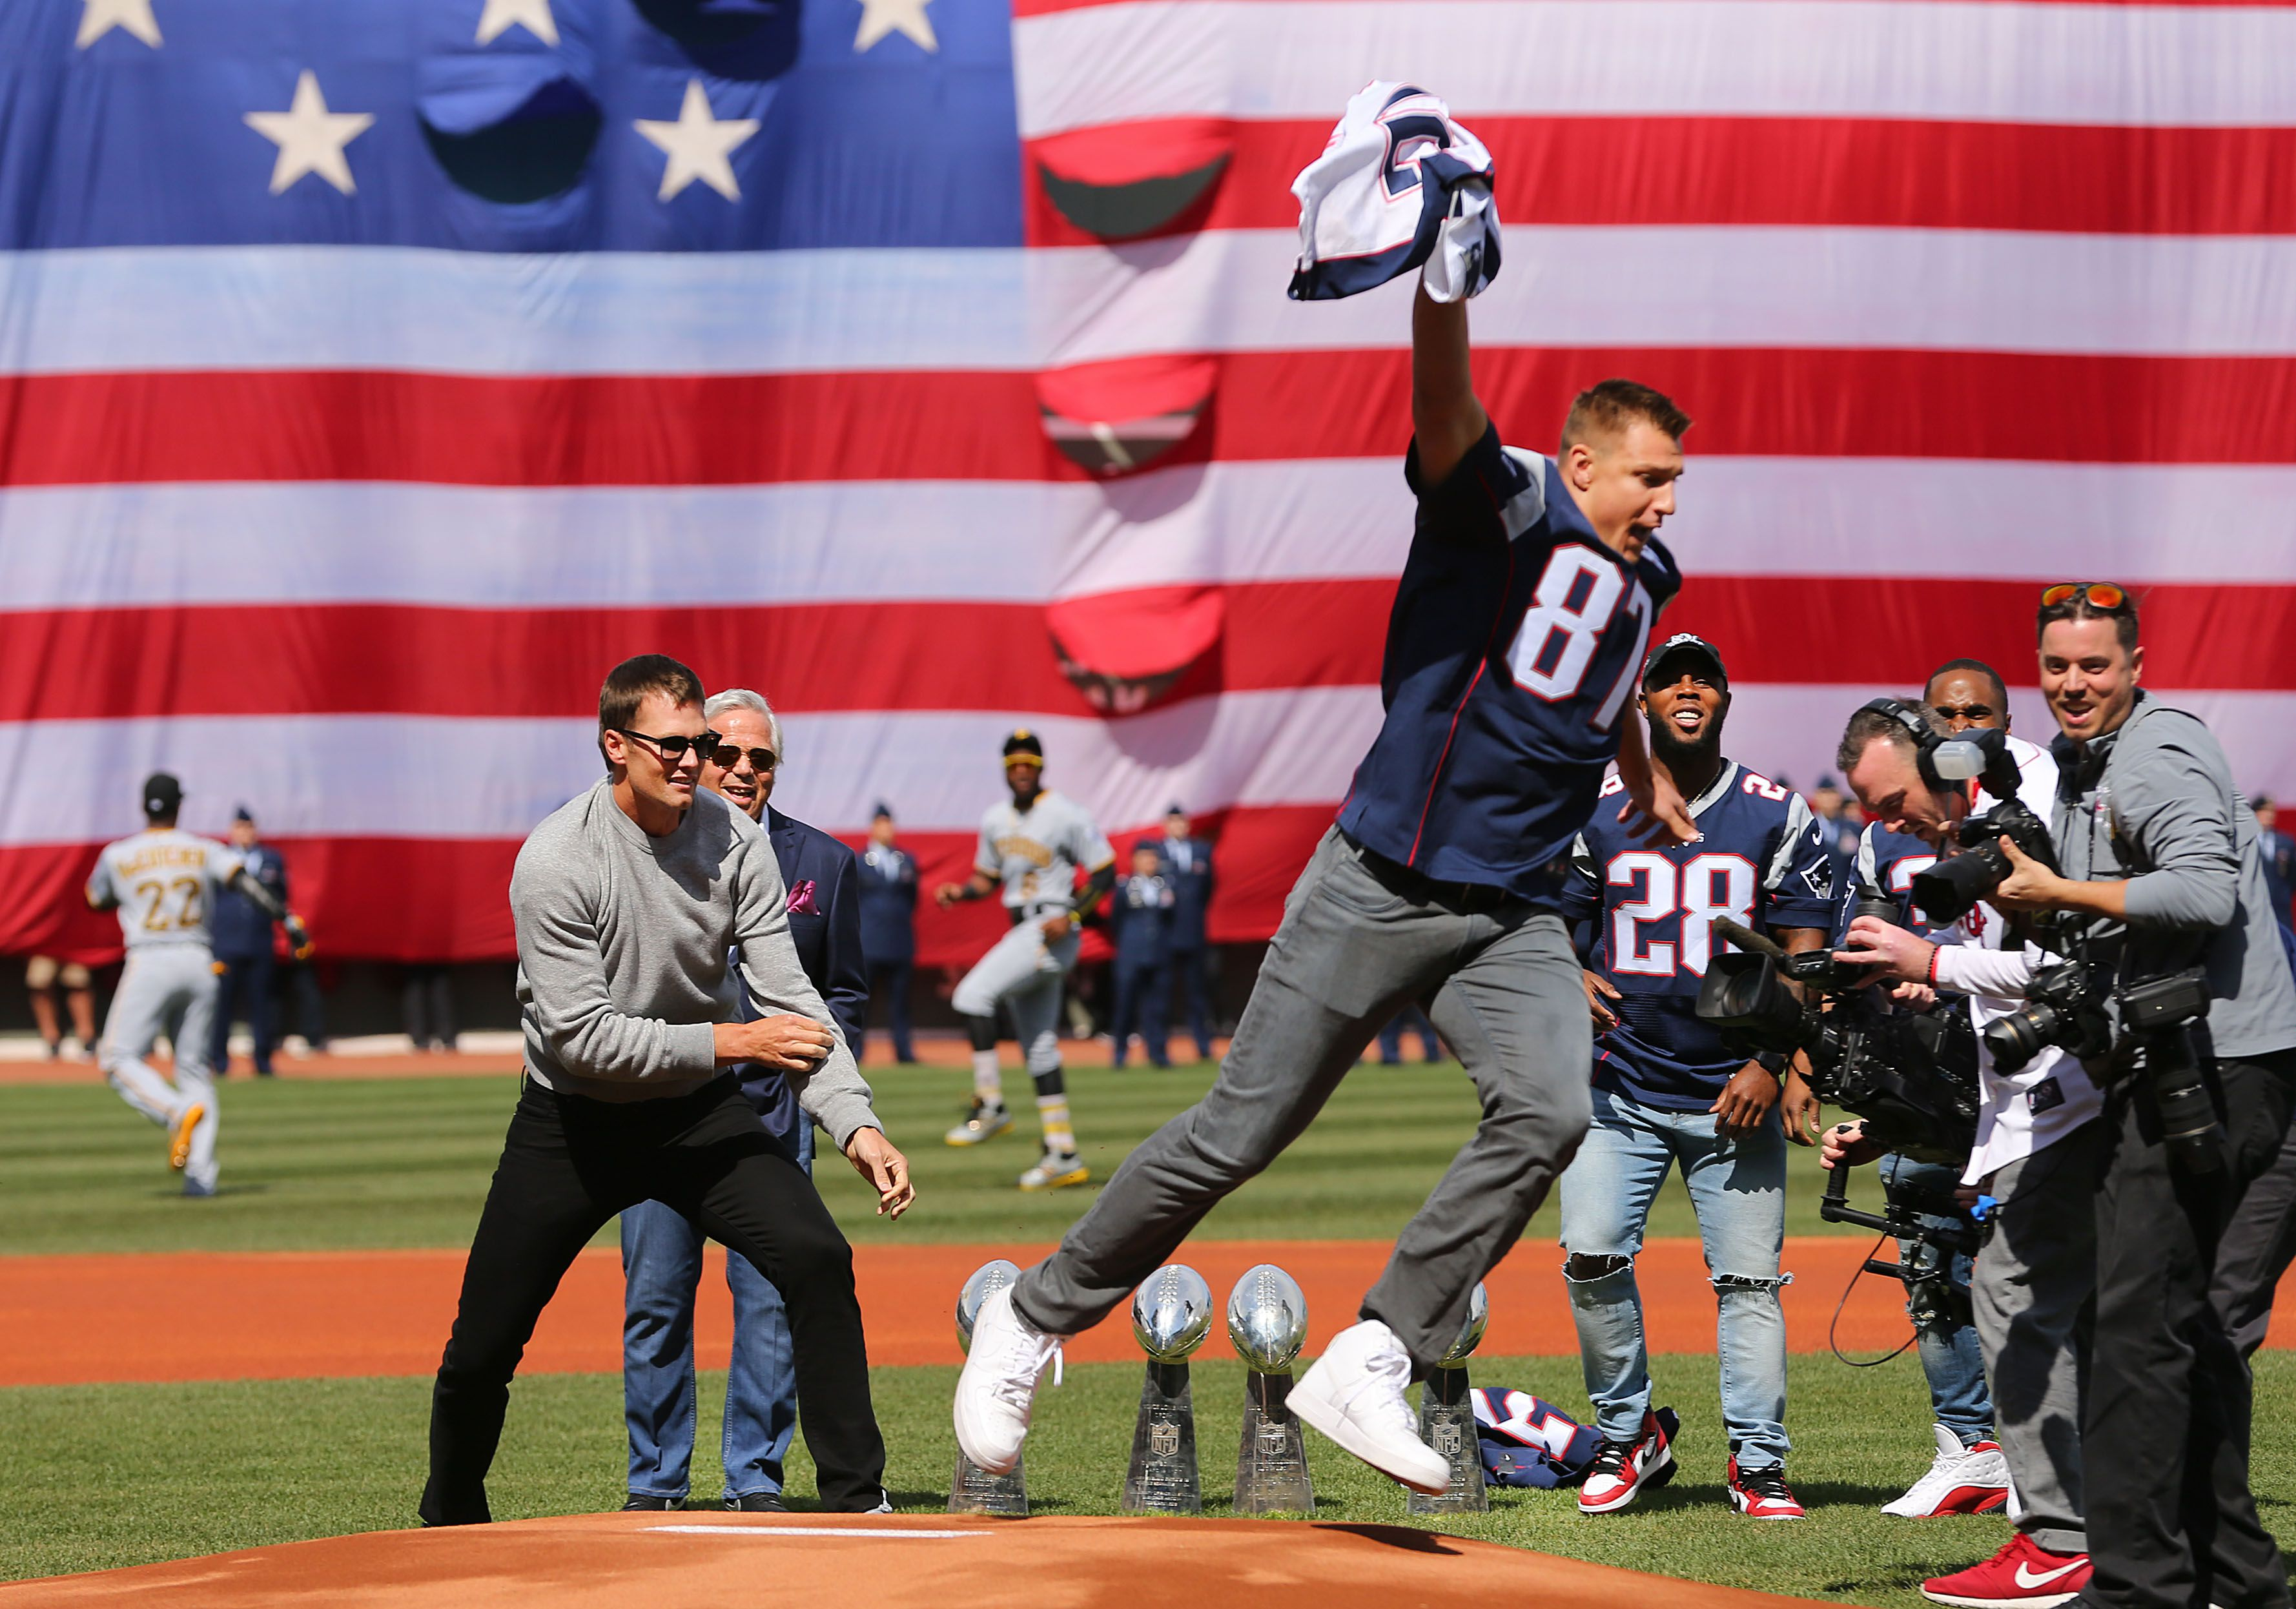 Gronk 'steals' Brady's jersey in pregame ceremony at Fenway - The ...